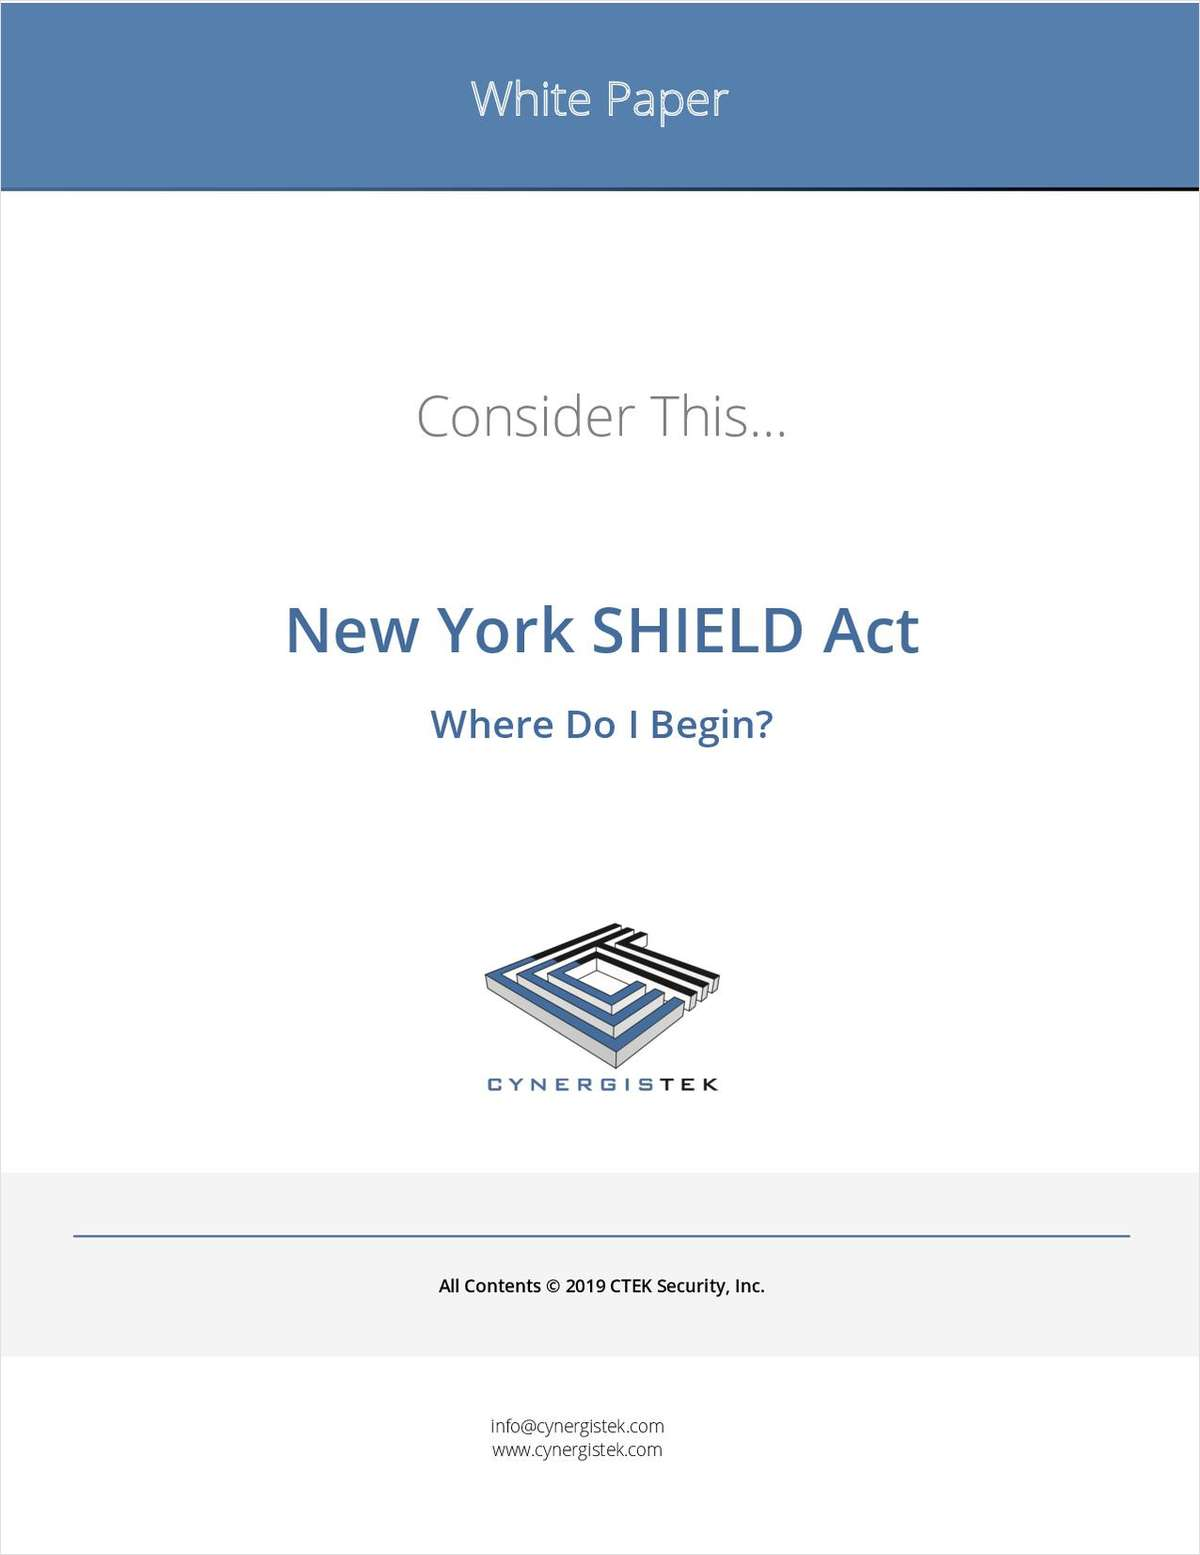 New York SHIELD Act: Where Do I Begin?